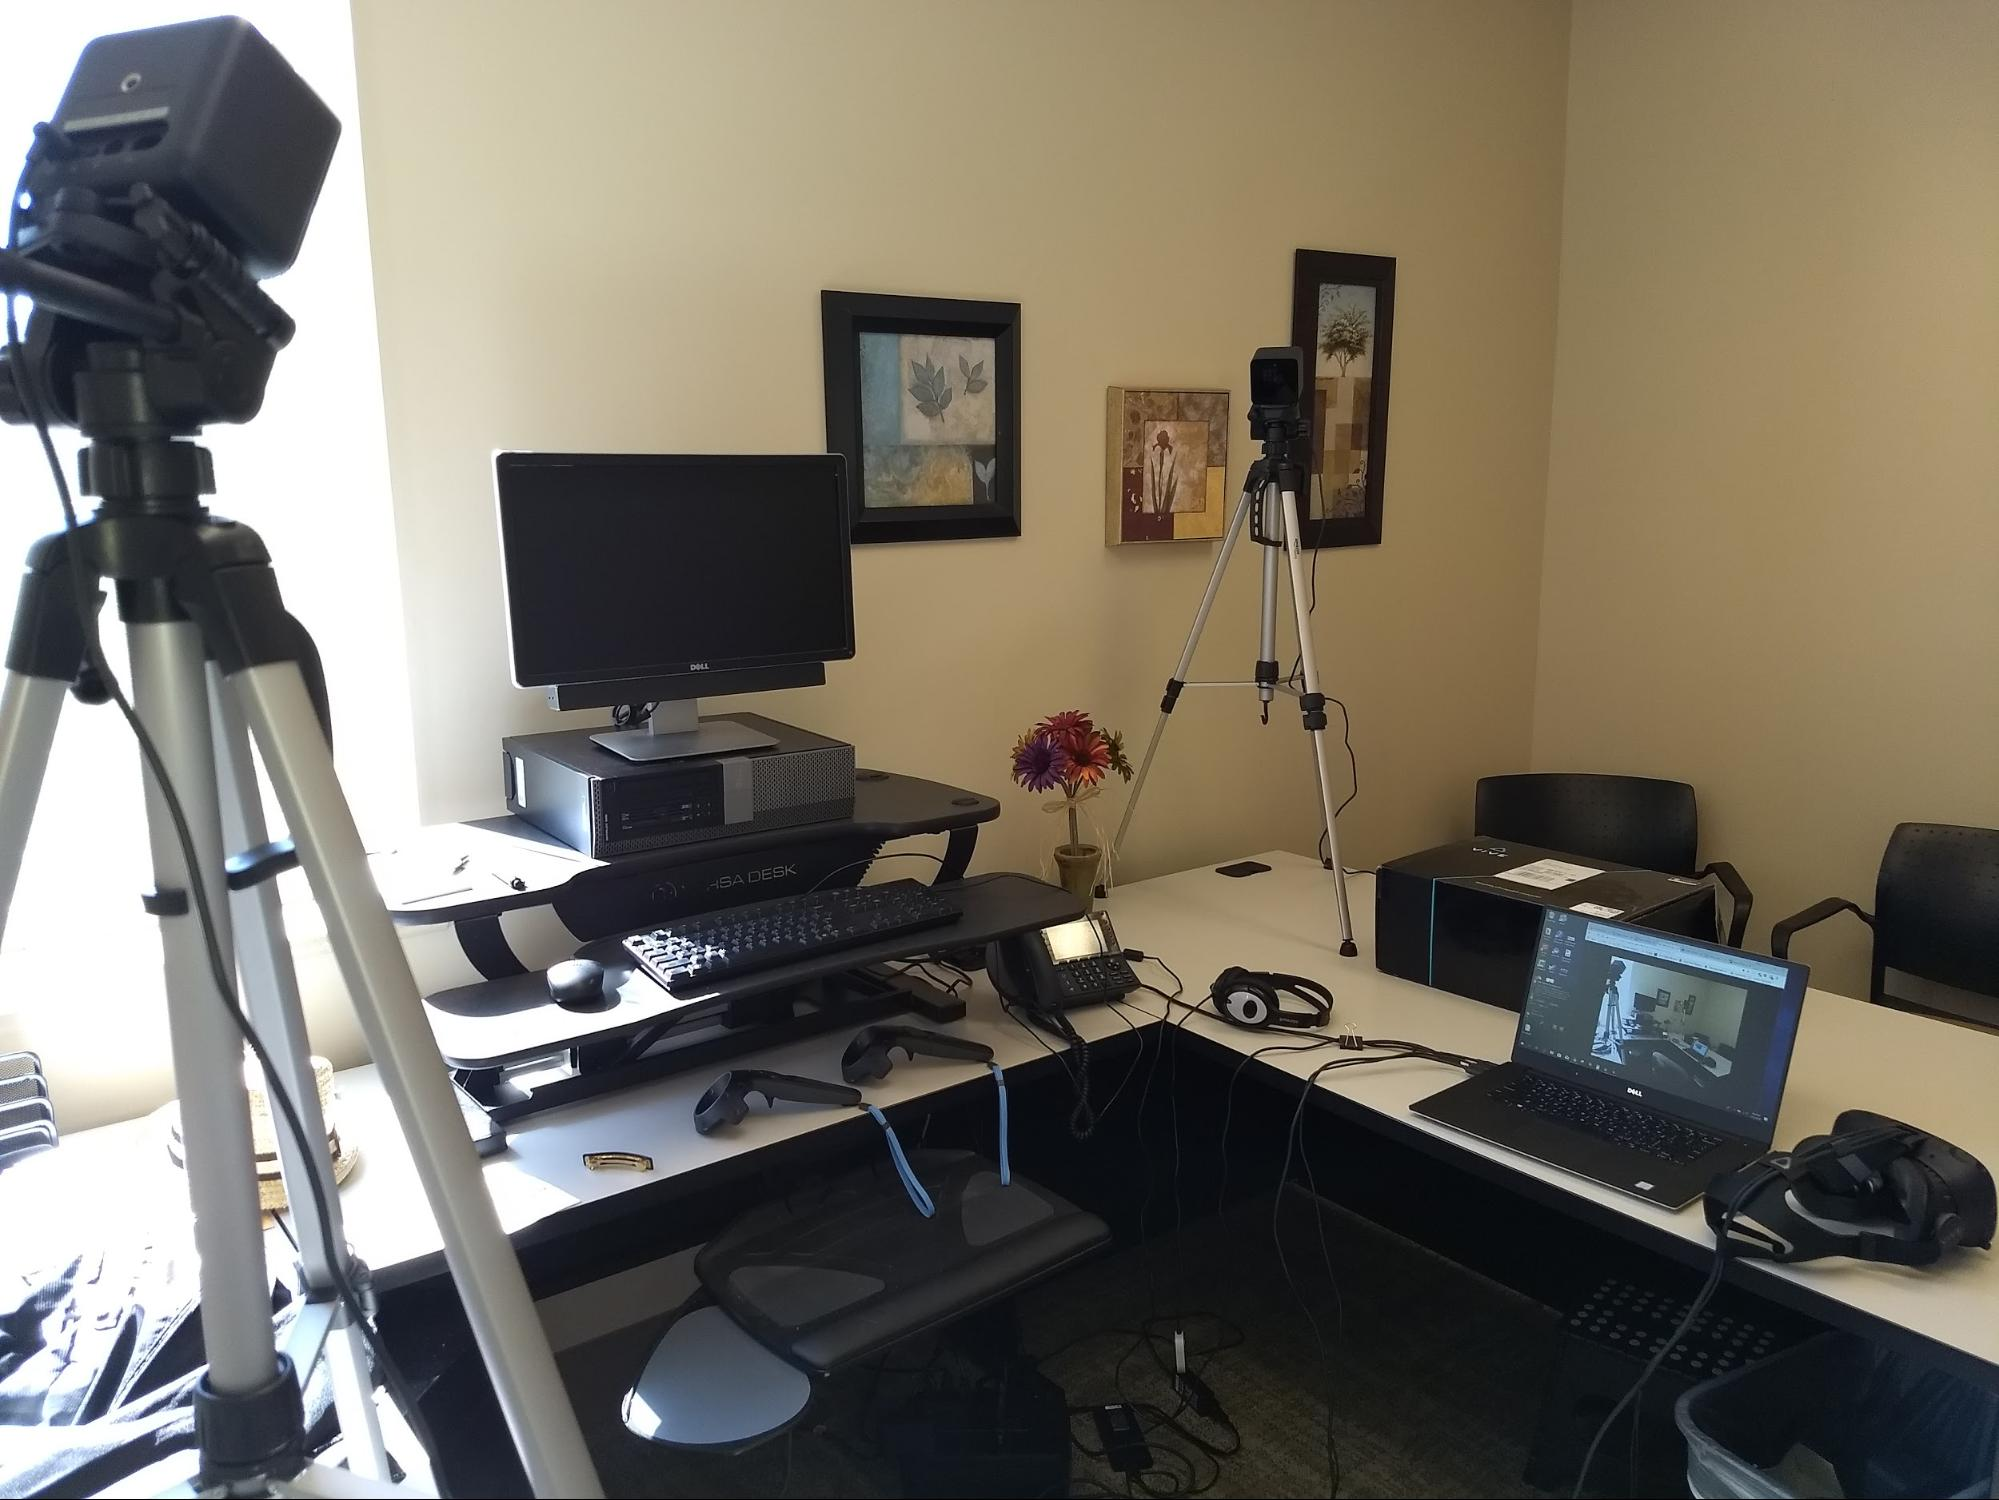 HTC Vive System Set-Up at Columbia Gorge Community College